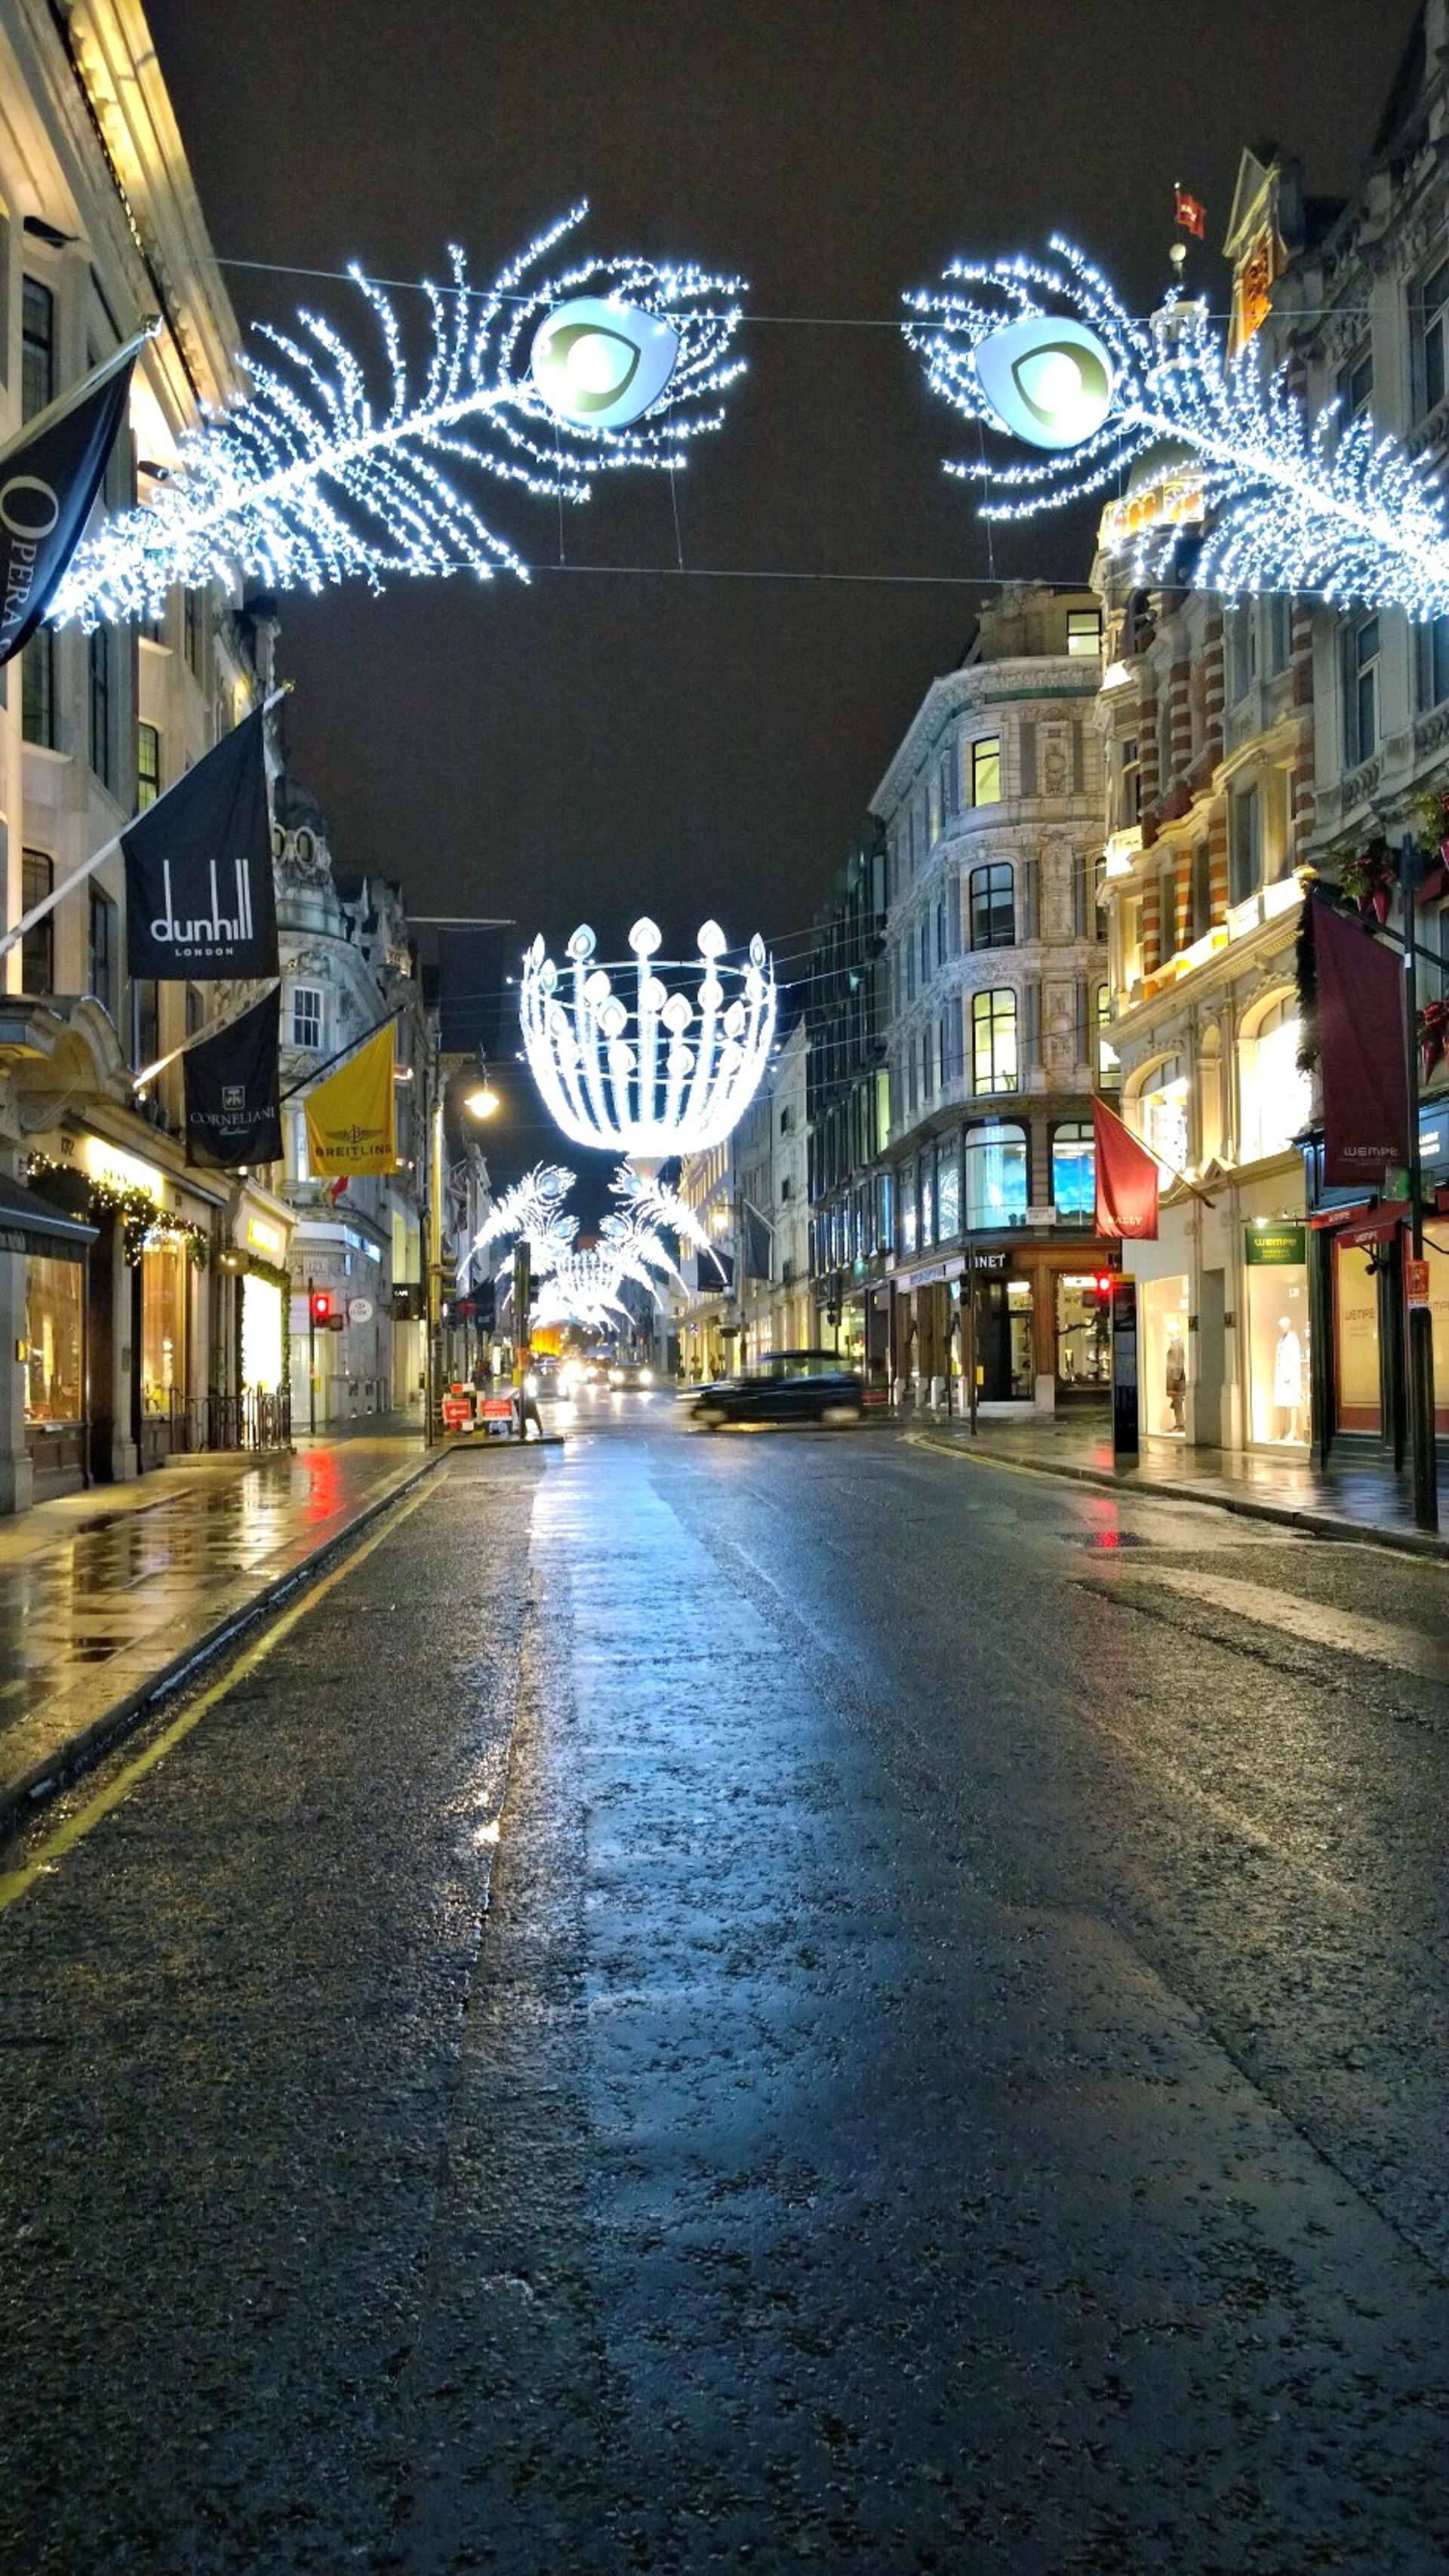 Street, Travel, Urban, City, Illuminated